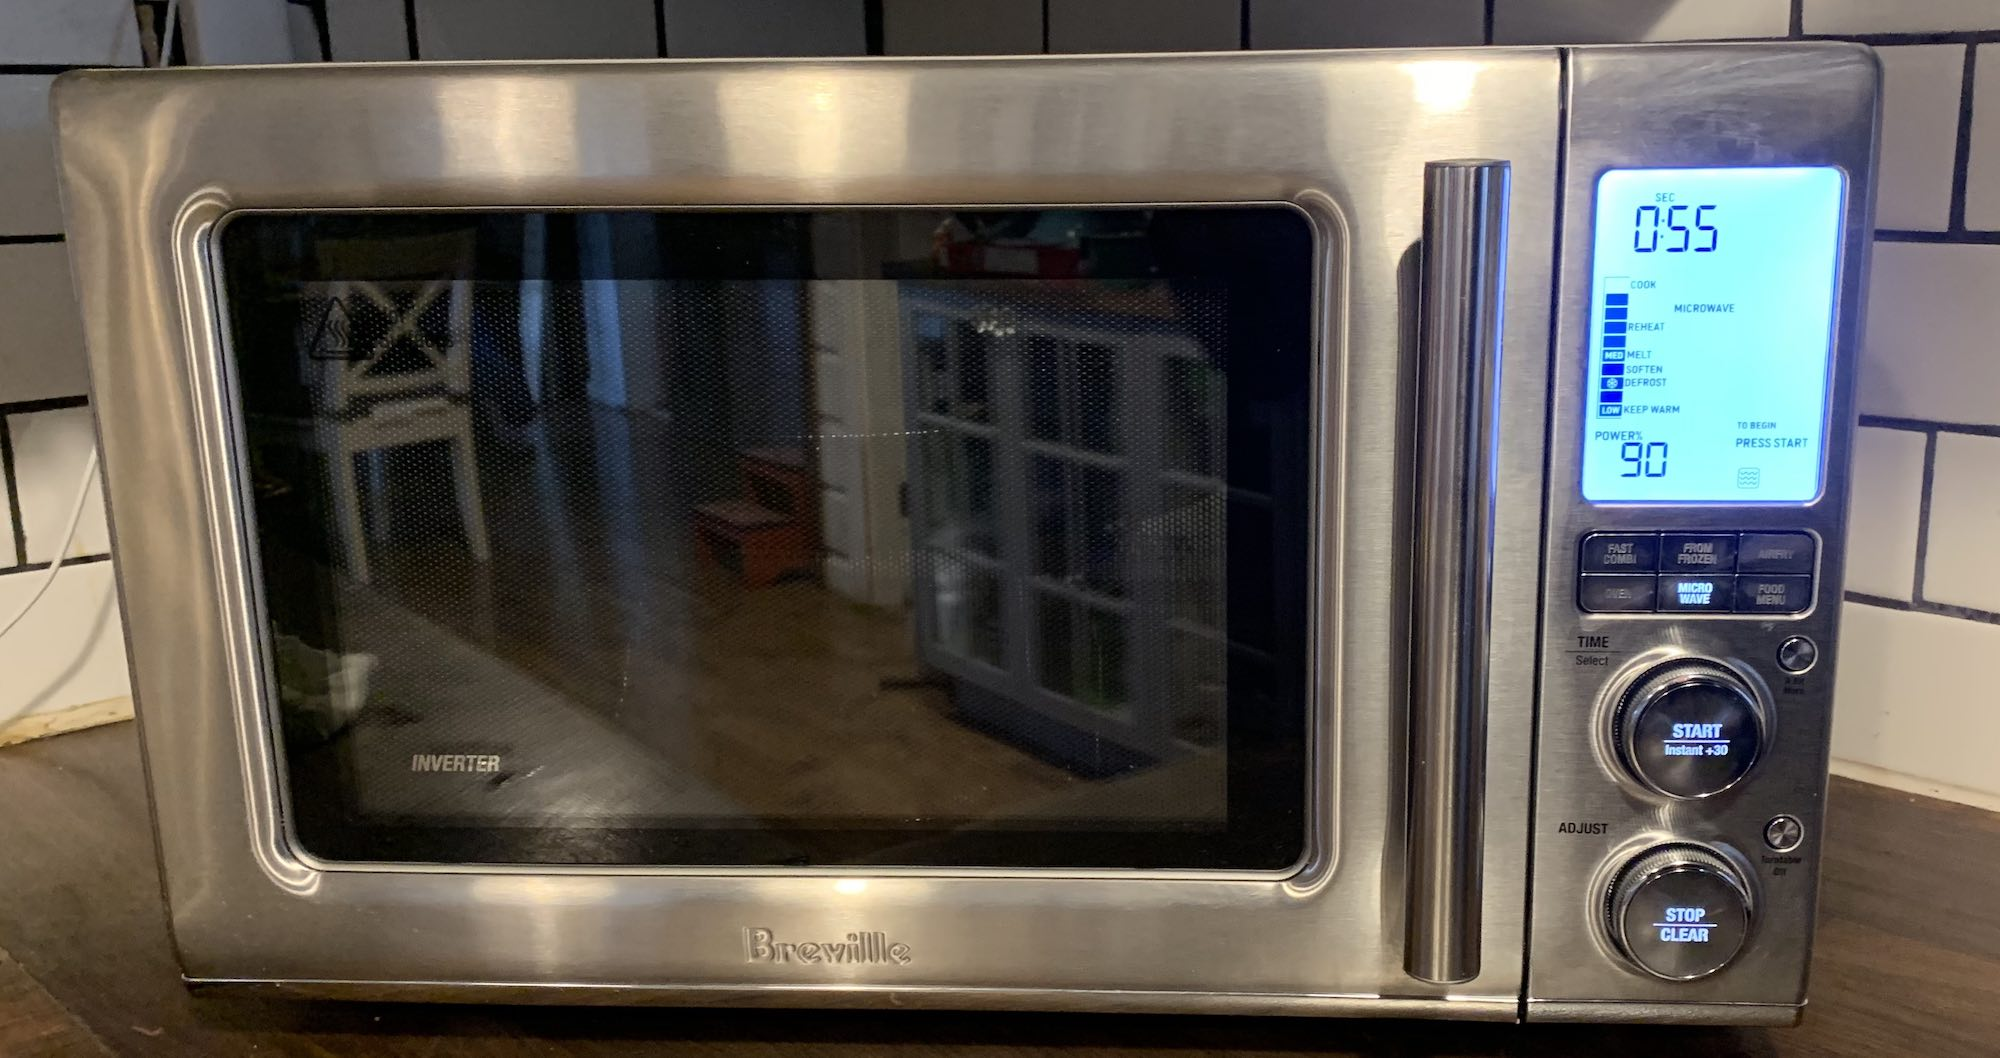 Breville Countertop 3-in-1 Convection Microwave Review